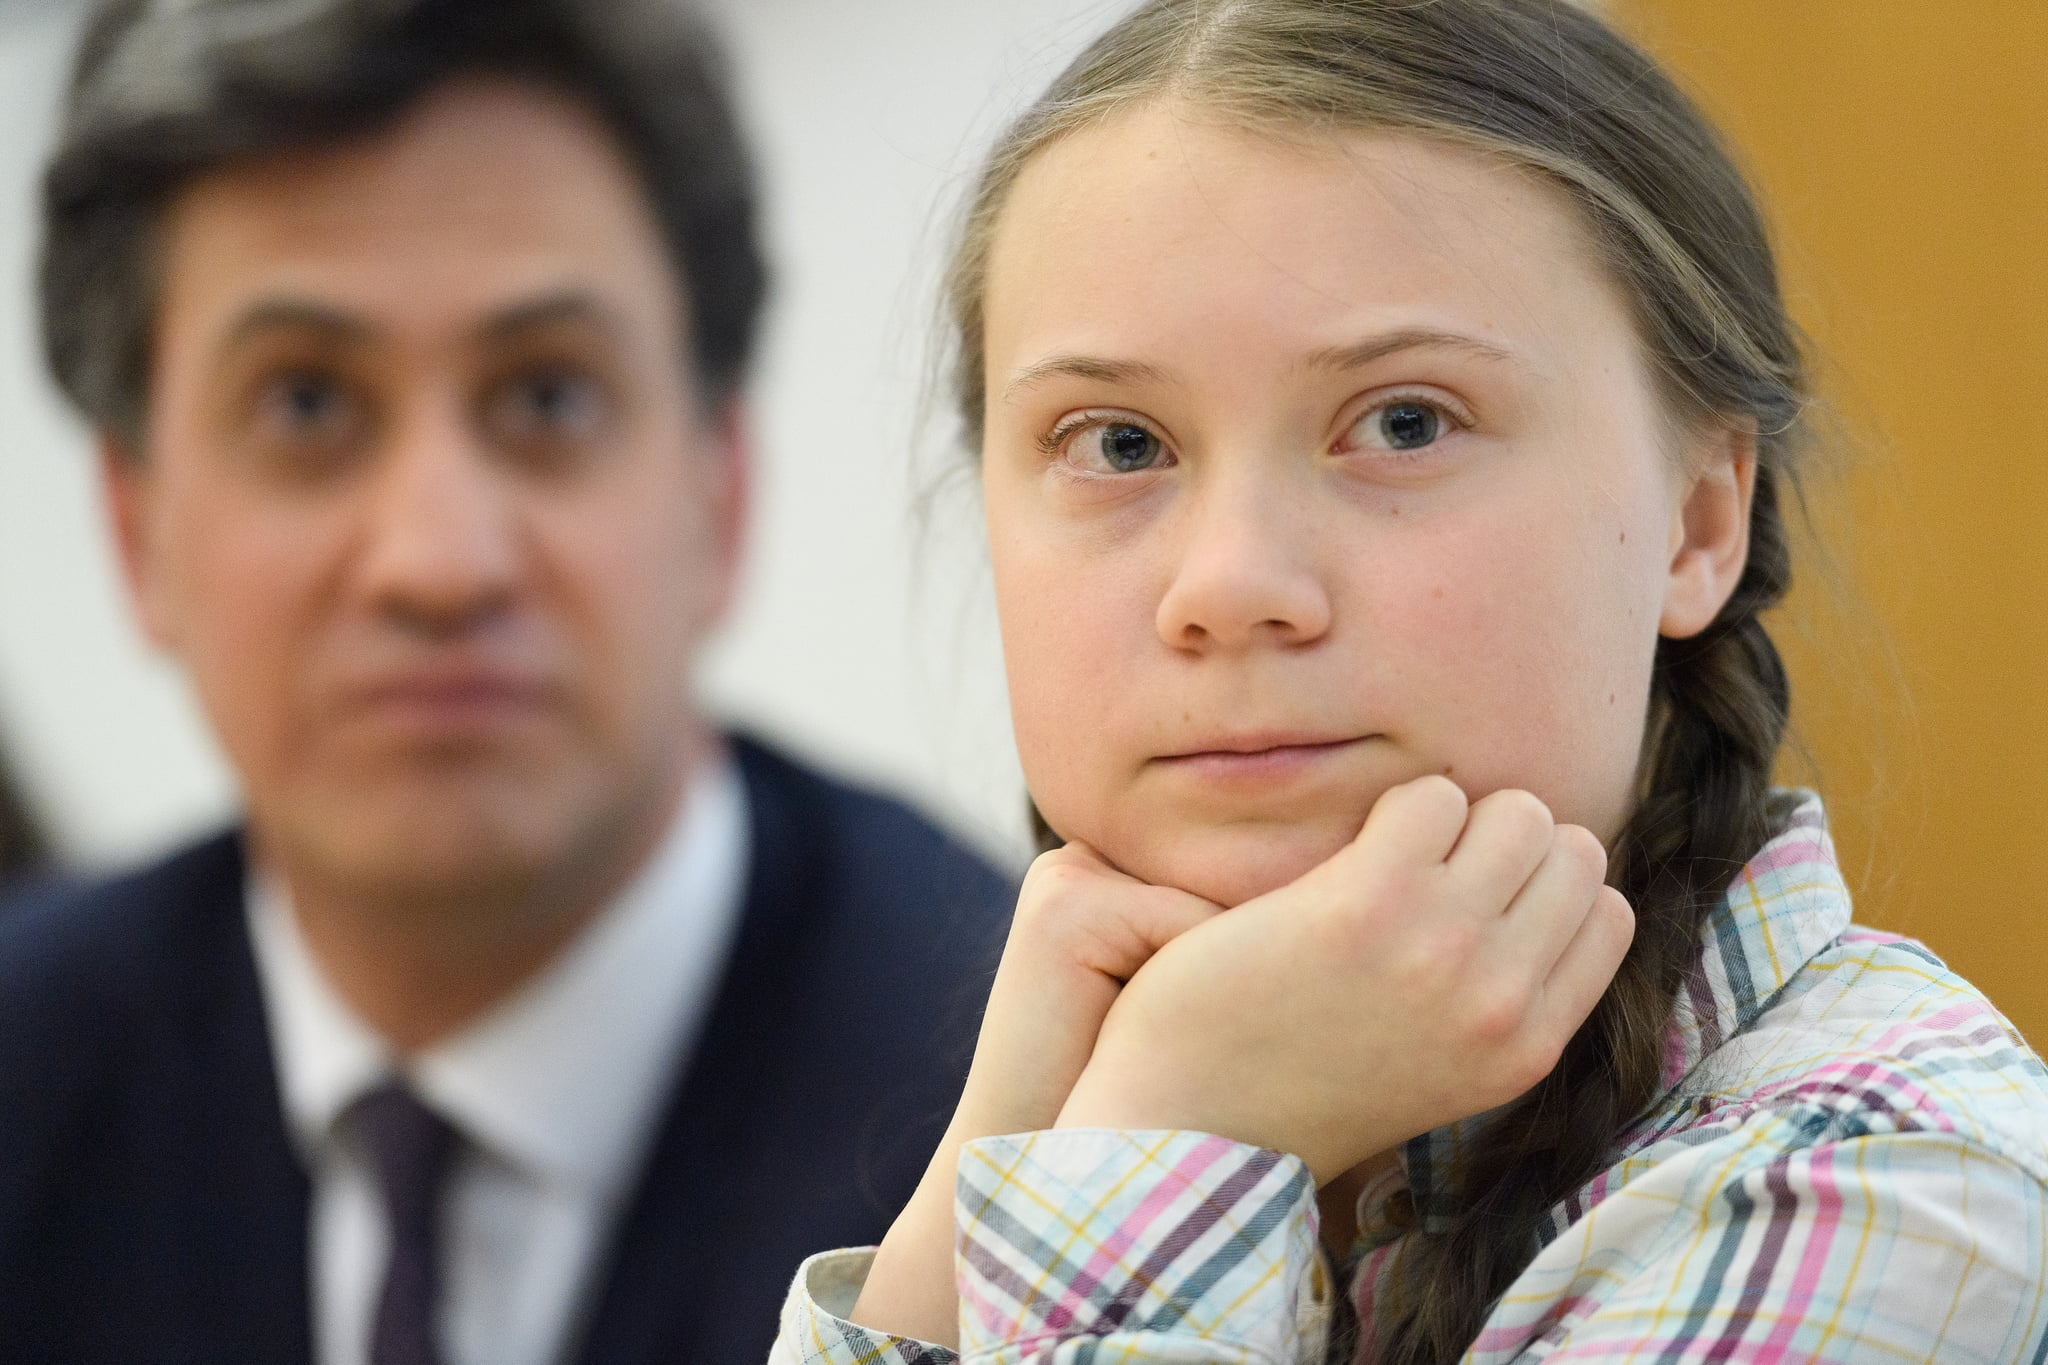 LONDON, ENGLAND - APRIL 23: Former Climate Change Minister Ed Miliband (L) looks on as Swedish environmental campaigner Greta Thunberg addresses politicians, media and guests with the Houses of Parliament on April 23, 2019 in London, England. Her visit coincides with the ongoing